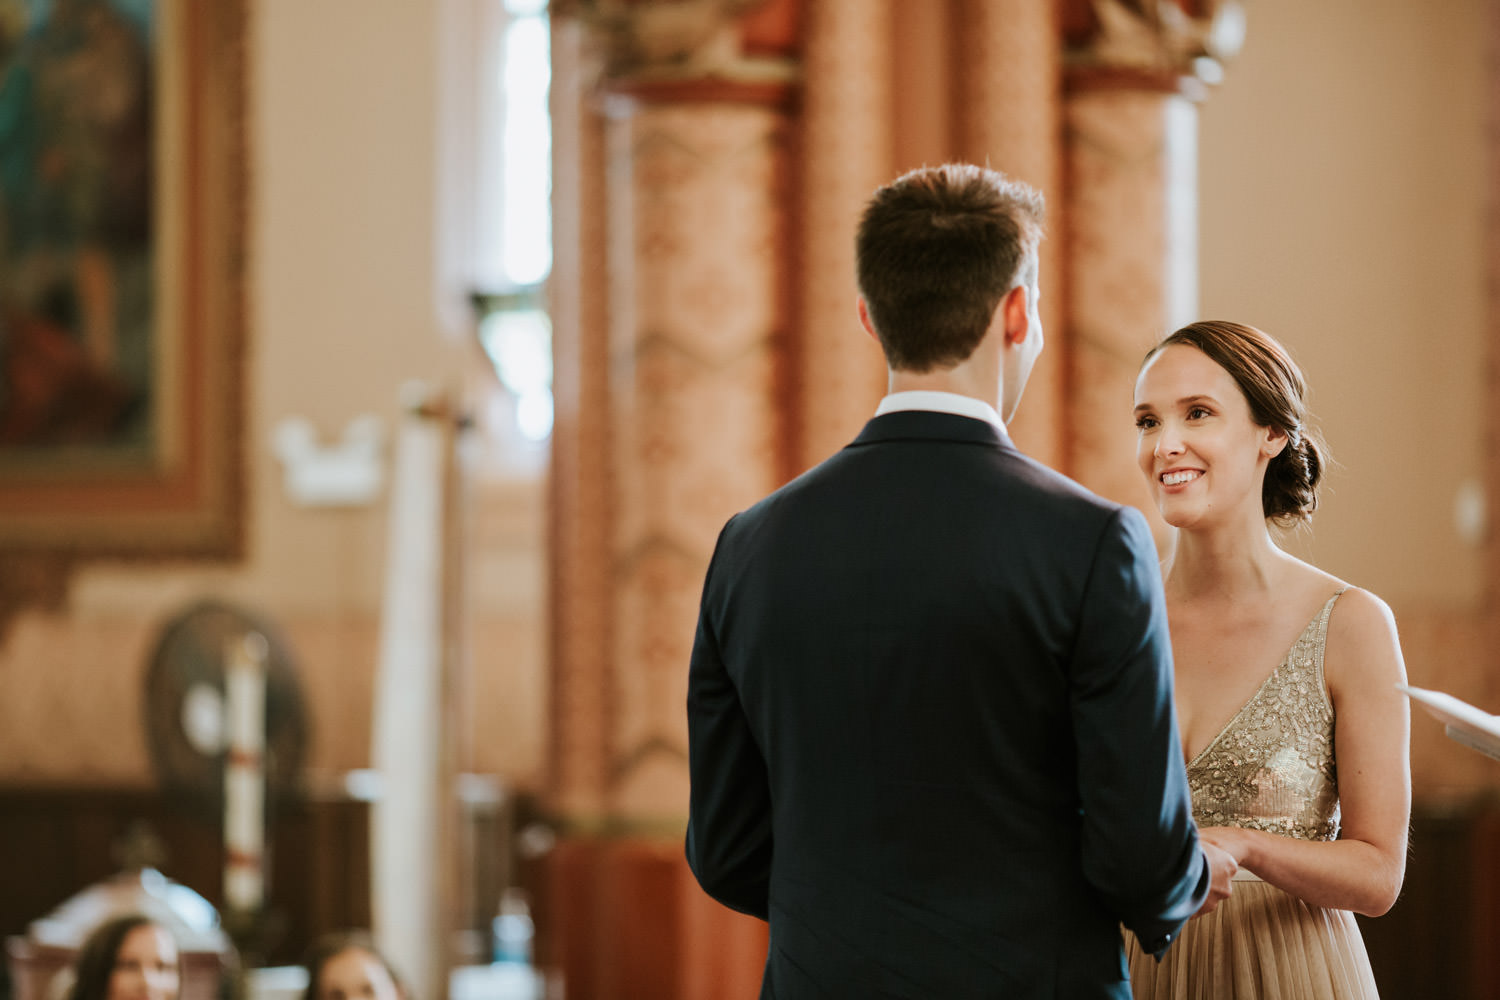 Groom puts the ring on the bride's finger at Holy Family Catholic Church